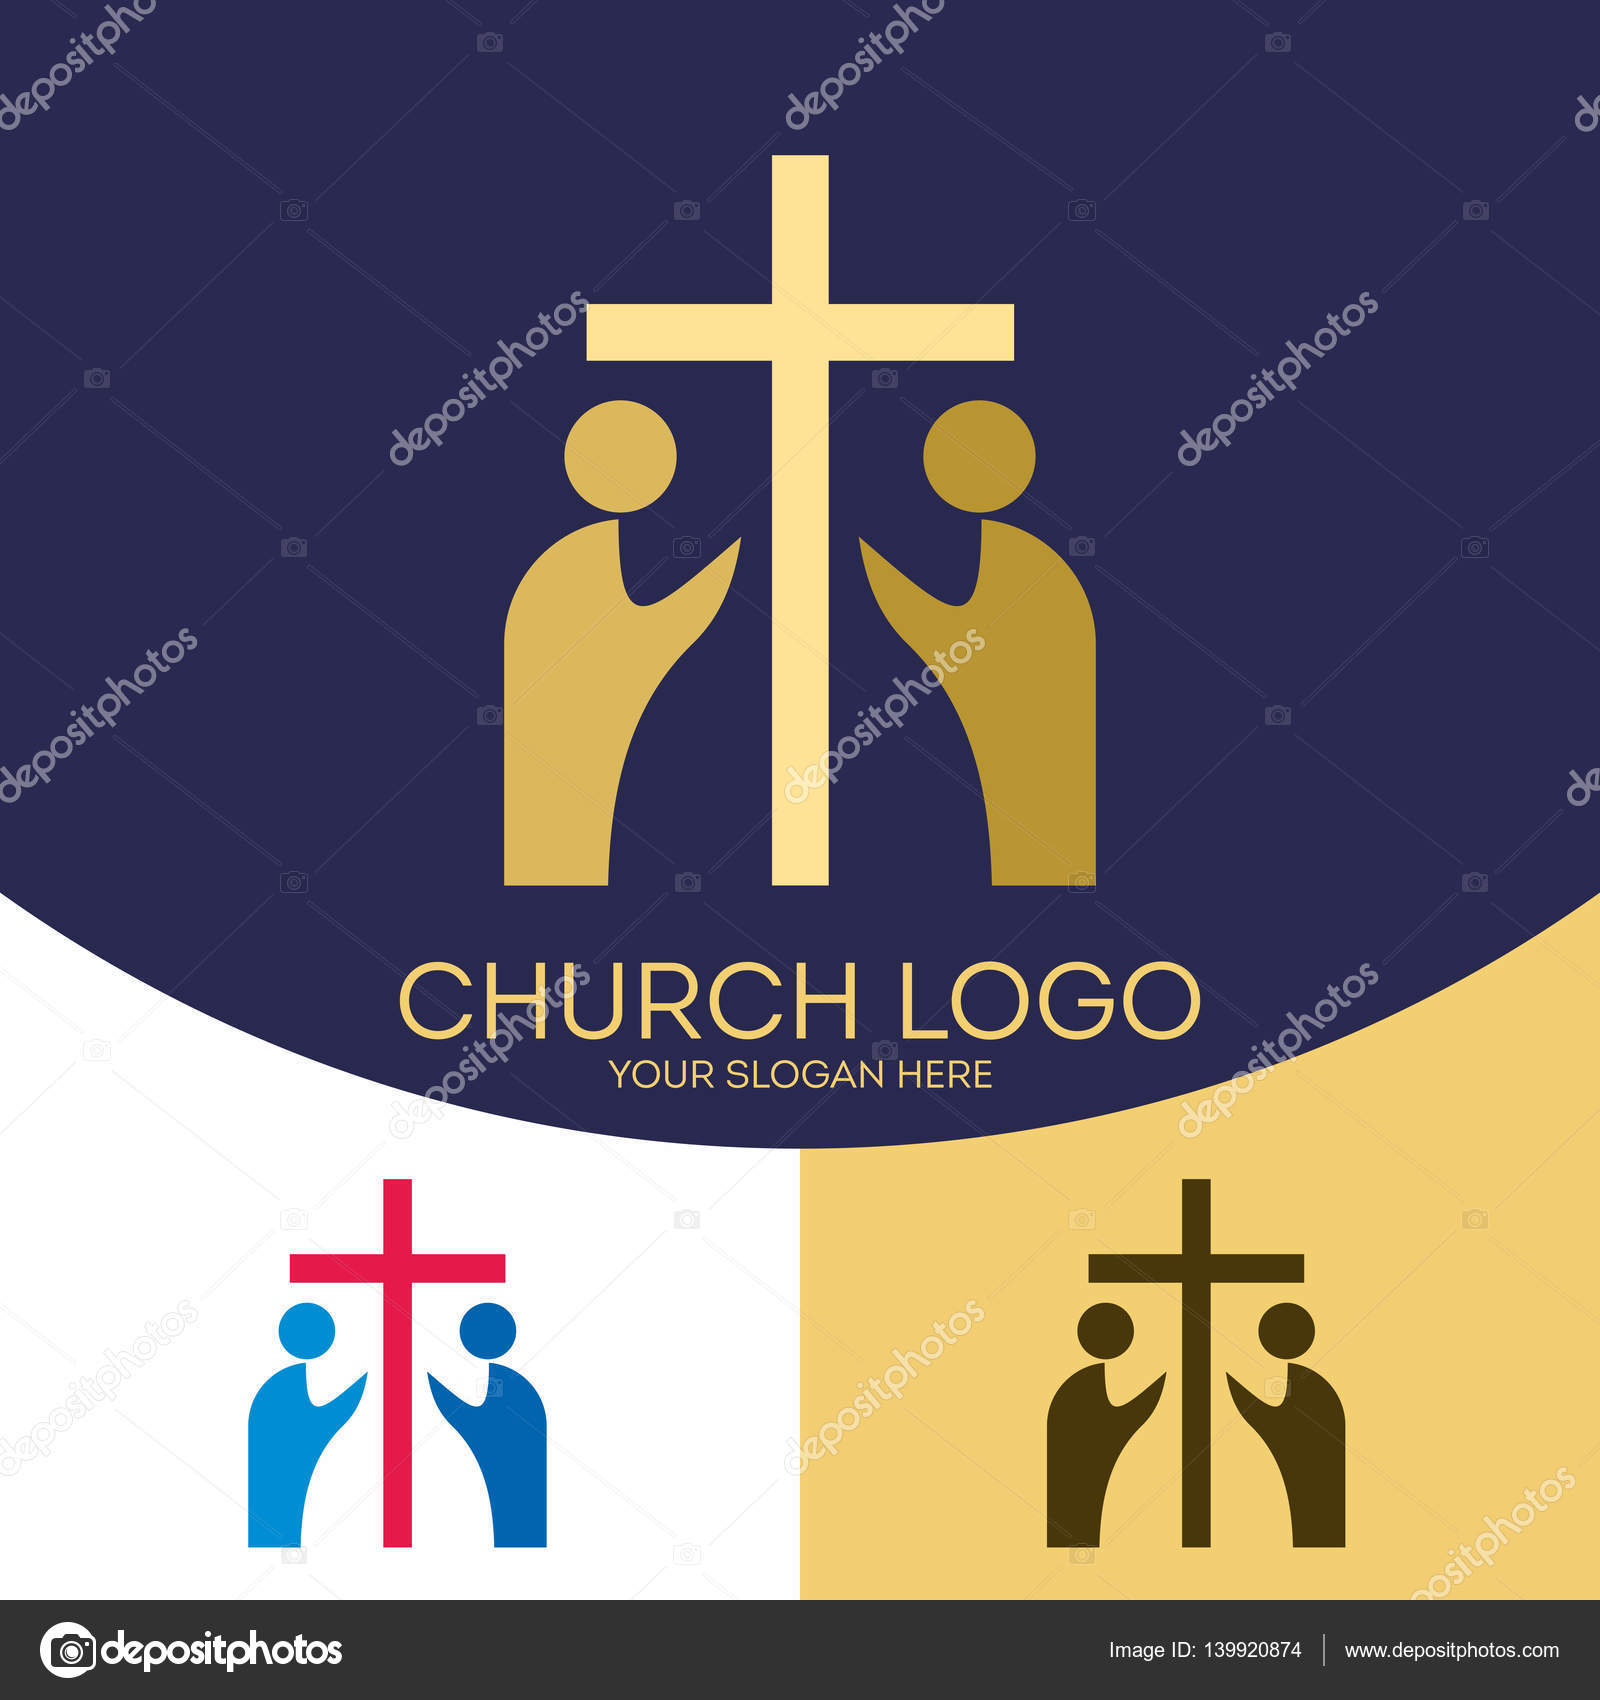 Church logo christian symbols the cross of jesus christ and the church logo christian symbols the cross of jesus christ and the people who worship buycottarizona Image collections